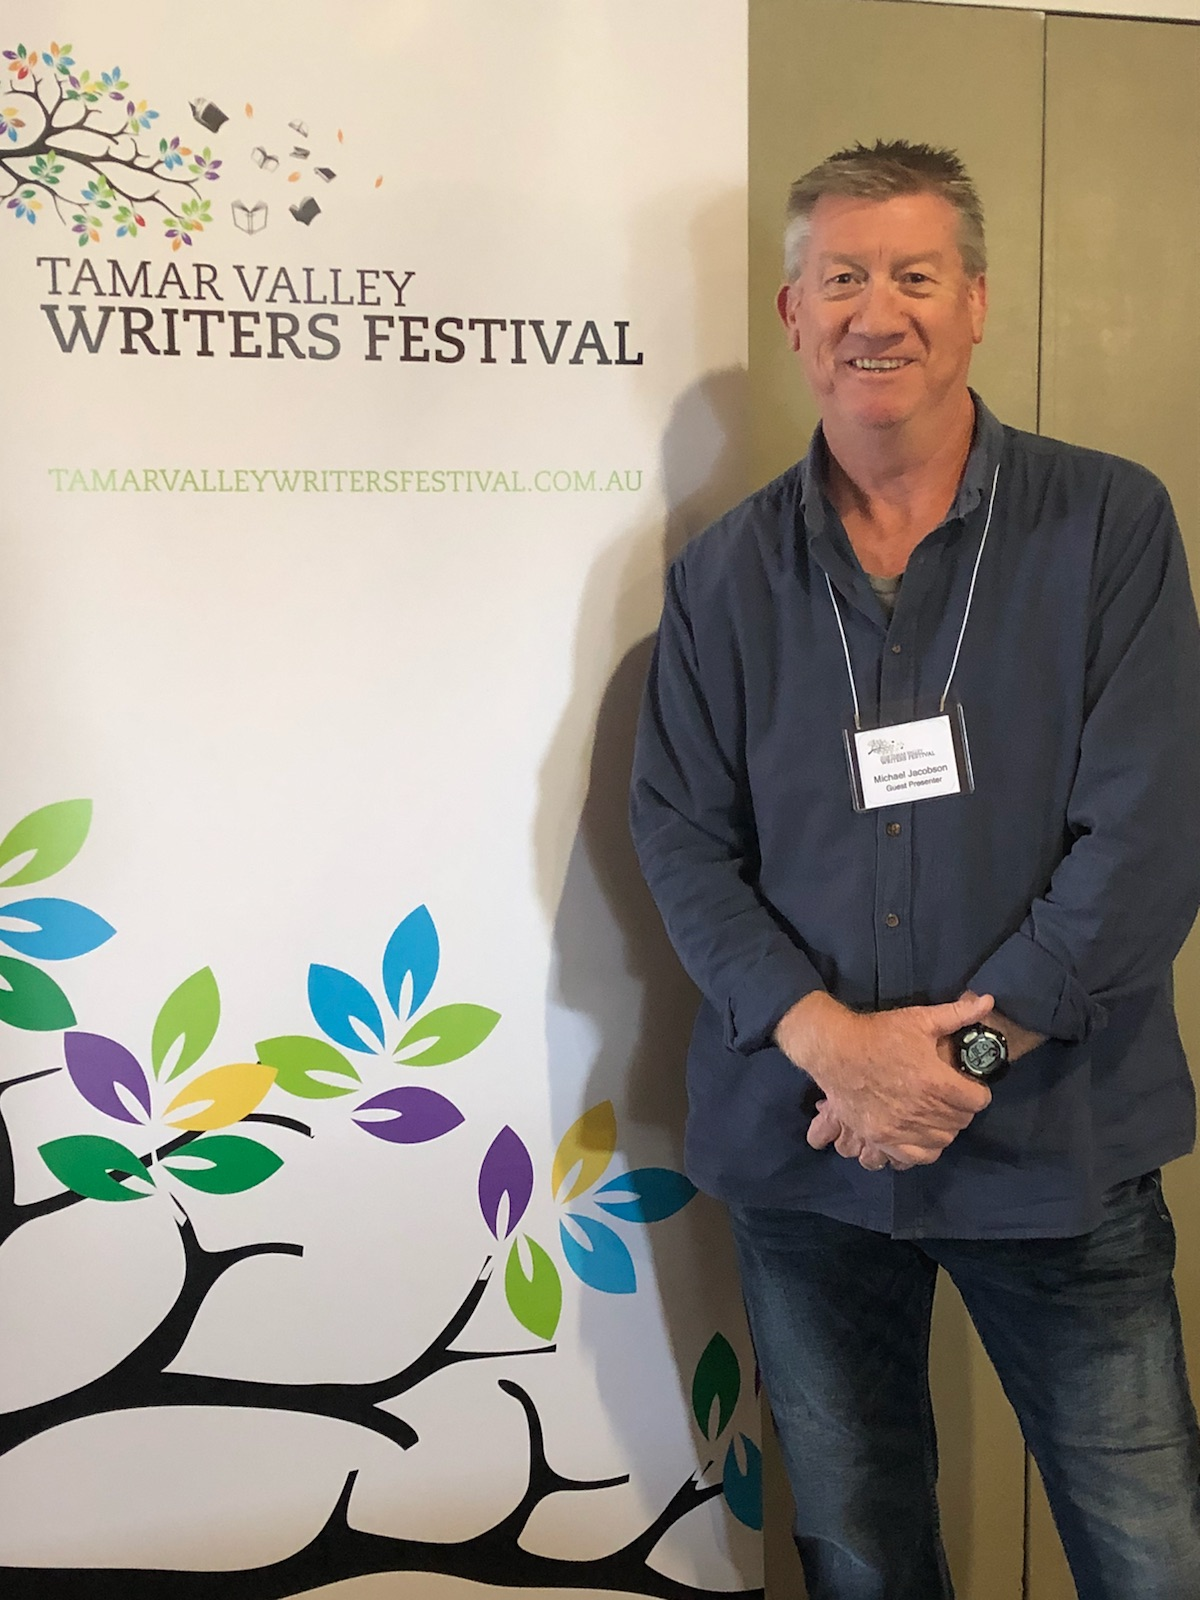 Editorial Director Michael Jacobson in Tasmania for the Tamar Valley Writers Festival.